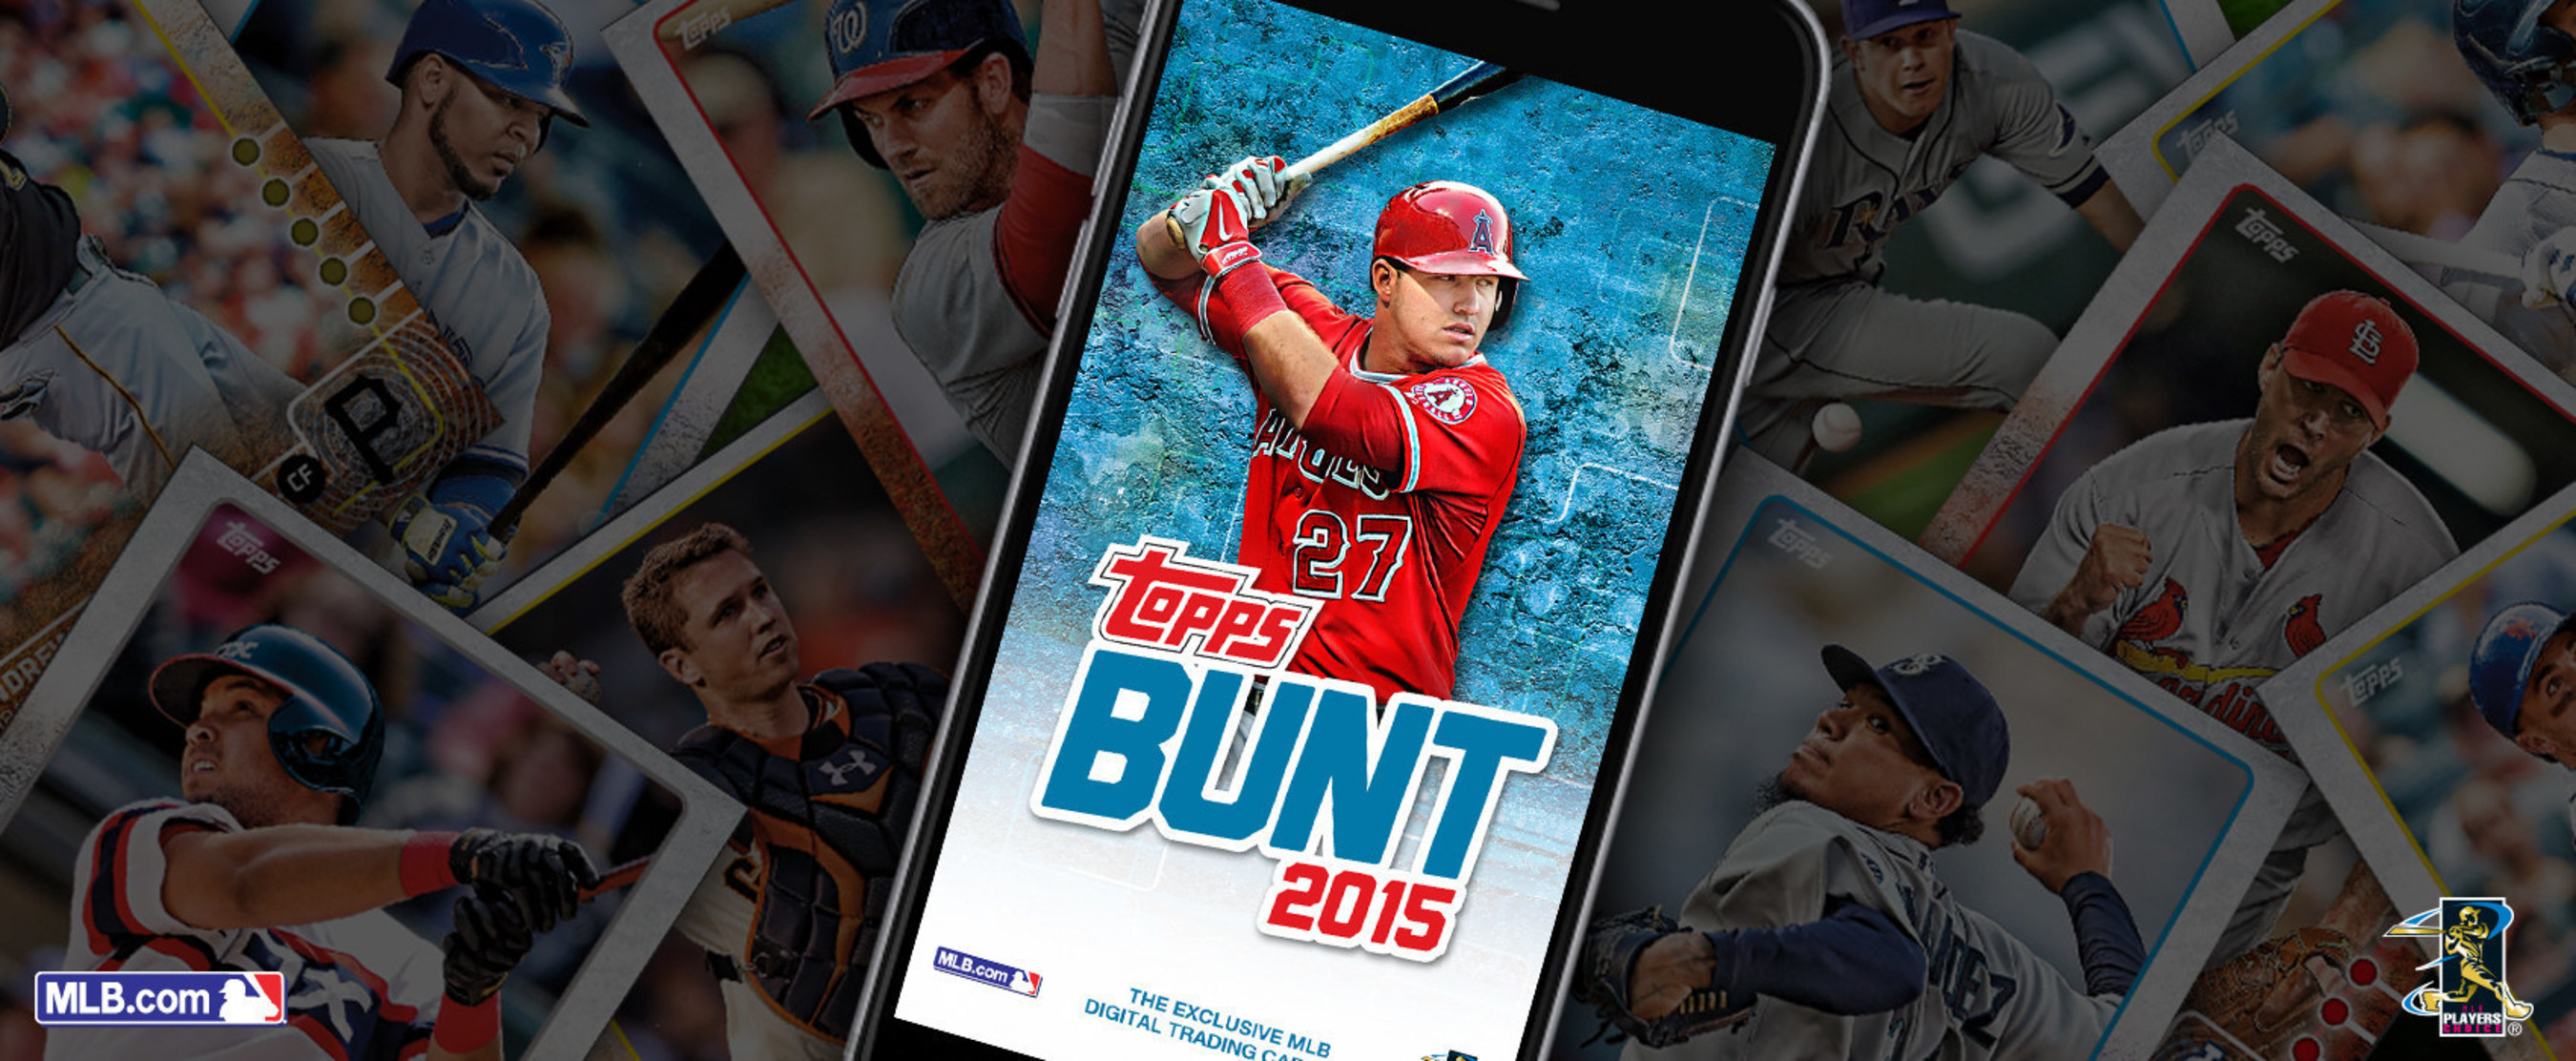 Image shows Topps BUNT 2015 splash screen.